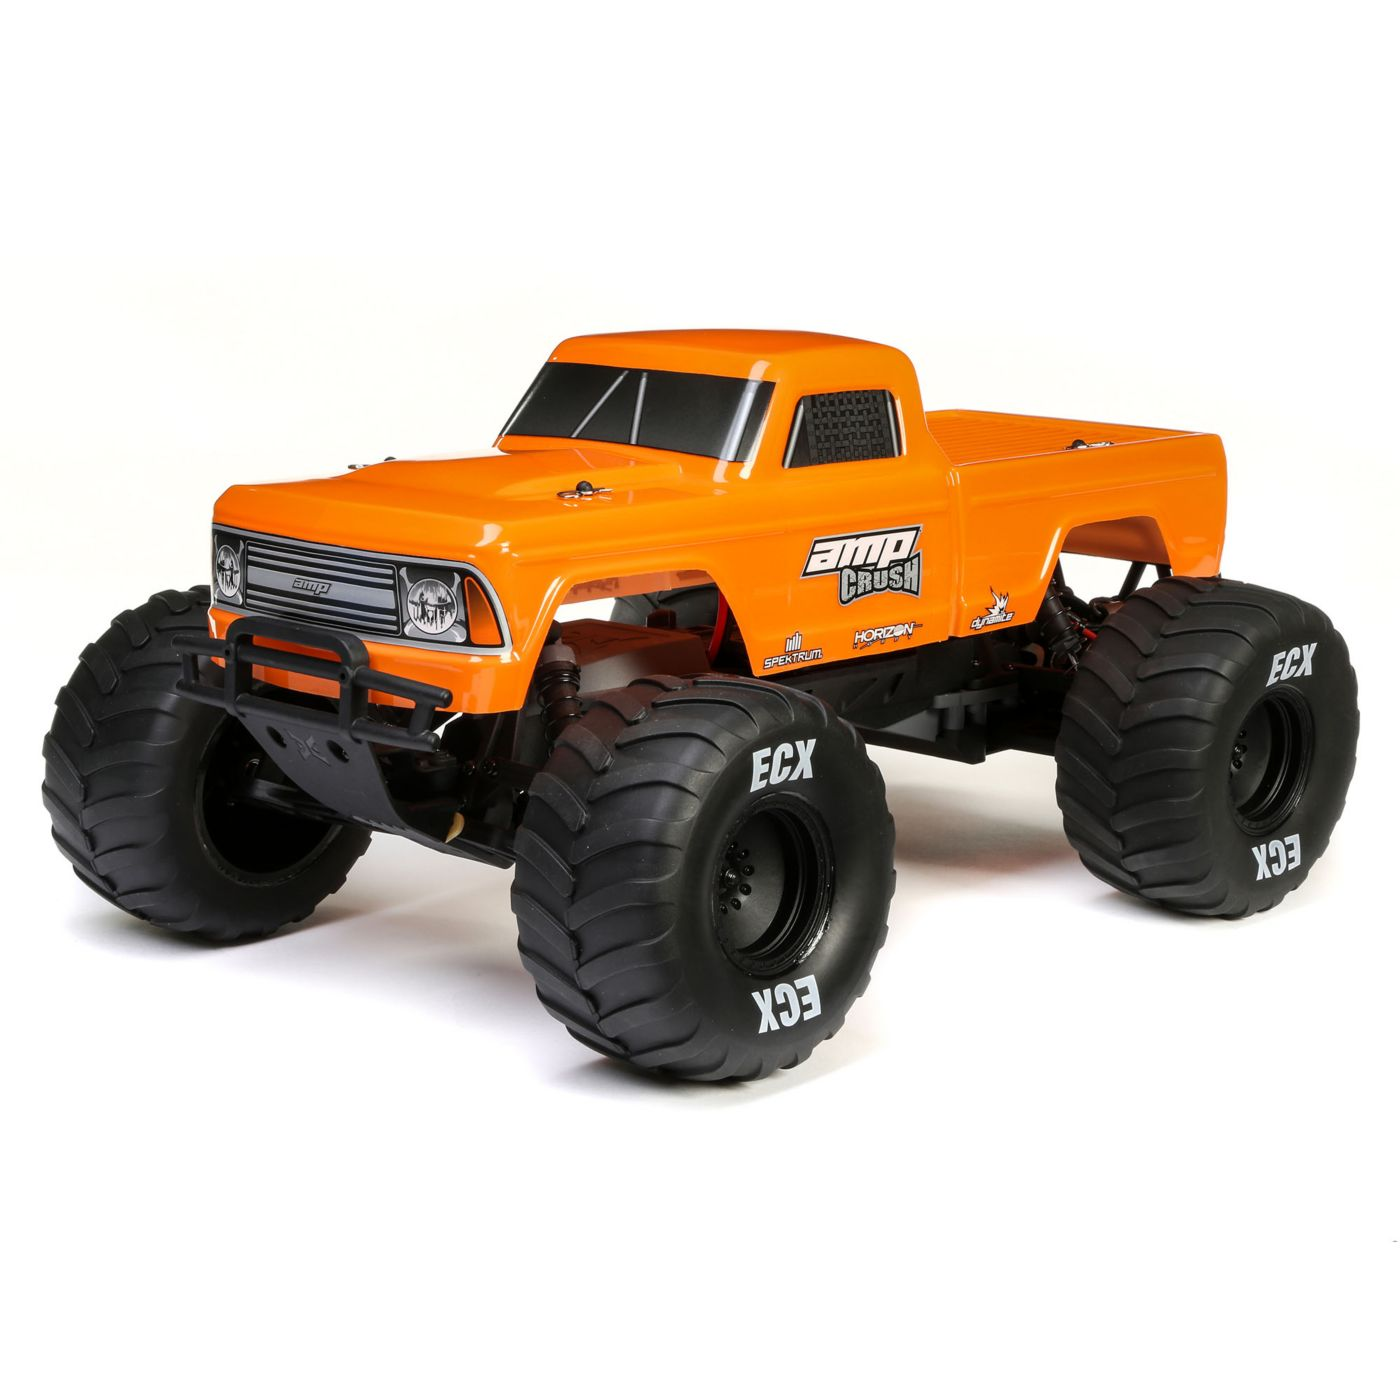 ECX03048T2 Orange 1/10 Amp Crush 2WD Monster Truck Brushed RTR (ECX) - $200 Value